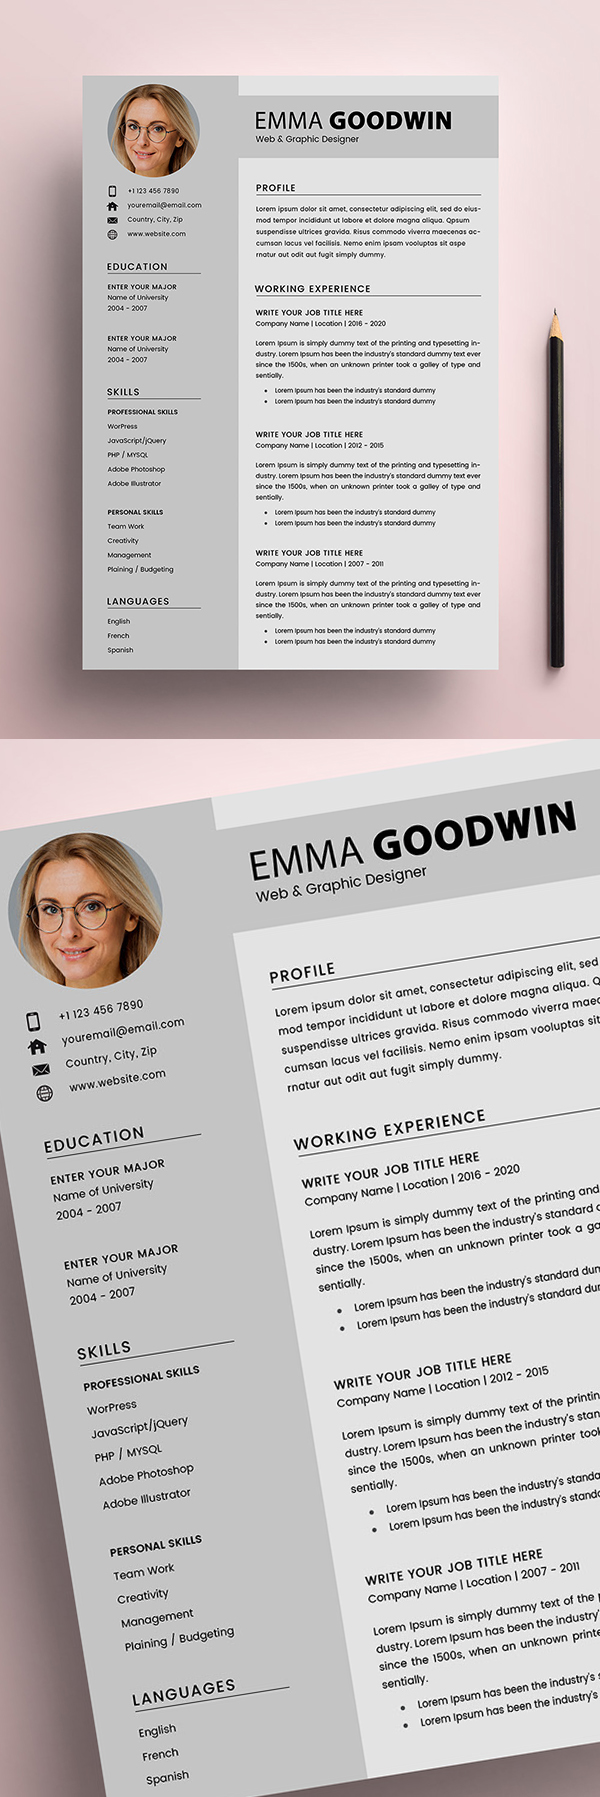 Free 2 Page Resume + Cover Letter